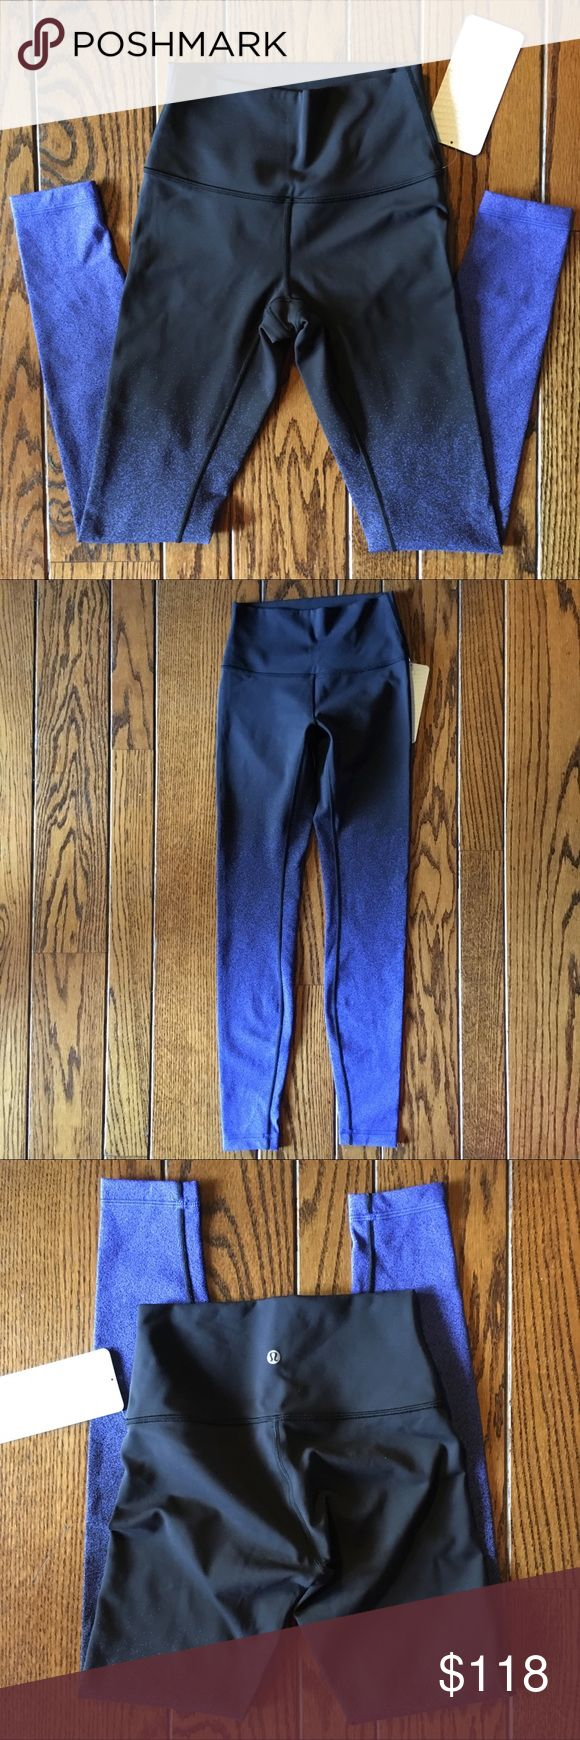 """NWT *RARE* Lululemon Wunder Under HighRise Legging Black and blue patterned lululemon wunder under HR tights that were designed to fit like a second skin-perfect for yoga or the gym. The Full-on Lyon fabric is soft, sweat-licking, and has a four-way Stretch. Super cute lululemon pattern! Waist band pocket holds your key or card. Waistband lies flat against your skin. Size 4. 79% nylon, 21% elastane.  Rise: 8.5"""" Inseam: 27"""" Waist Flat: 11"""" Ankle width: 3.75""""  No trades please, offers welcome…"""